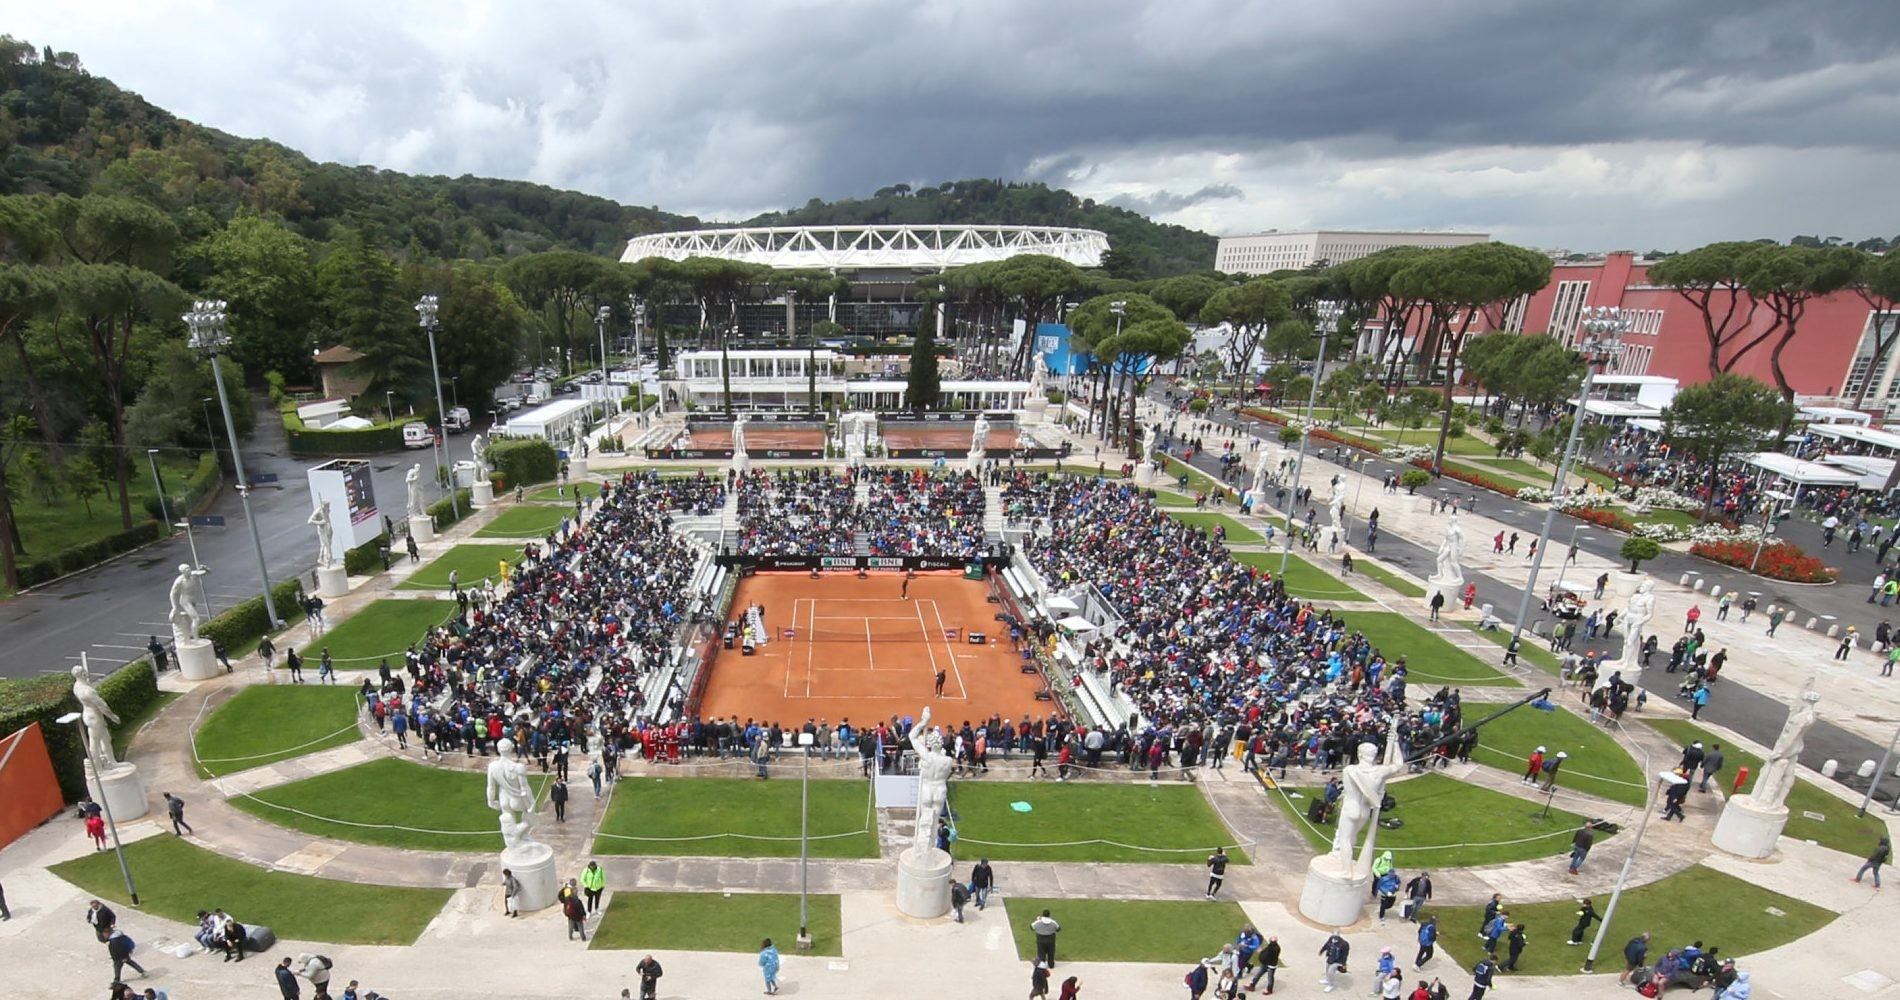 The Pietrangeli court is surrounded by 18 marble statues